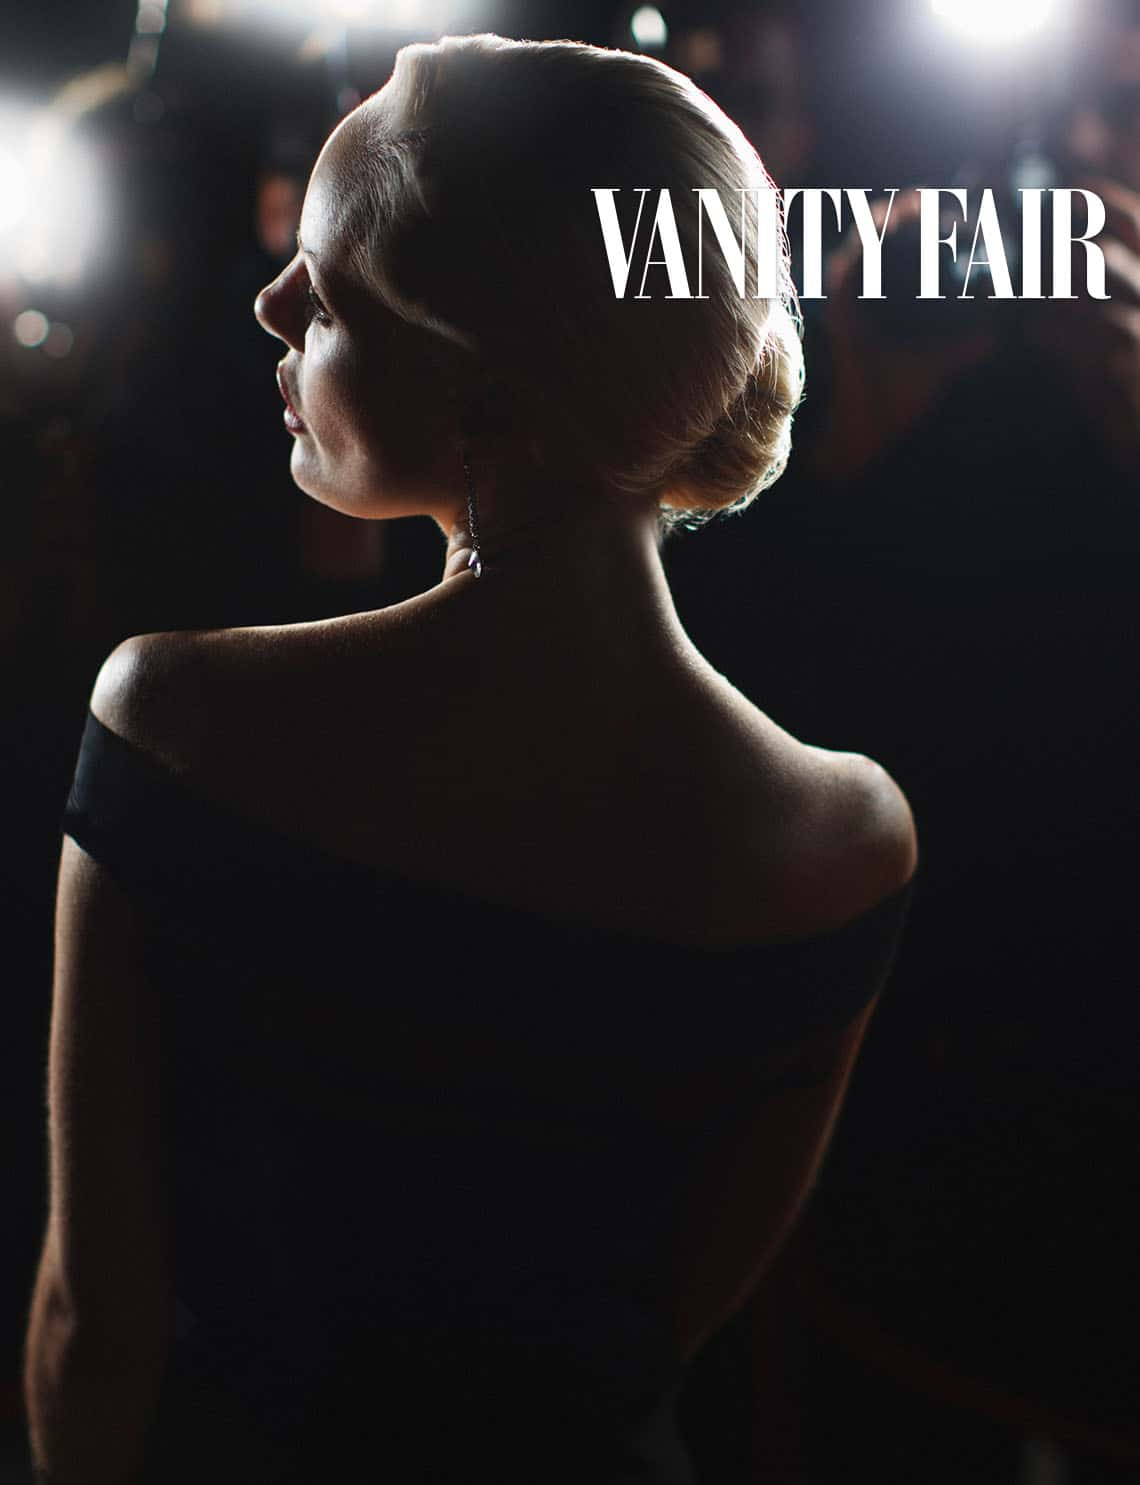 Advertise locally in Vanity Fair in more than 100 markets across the U.S.